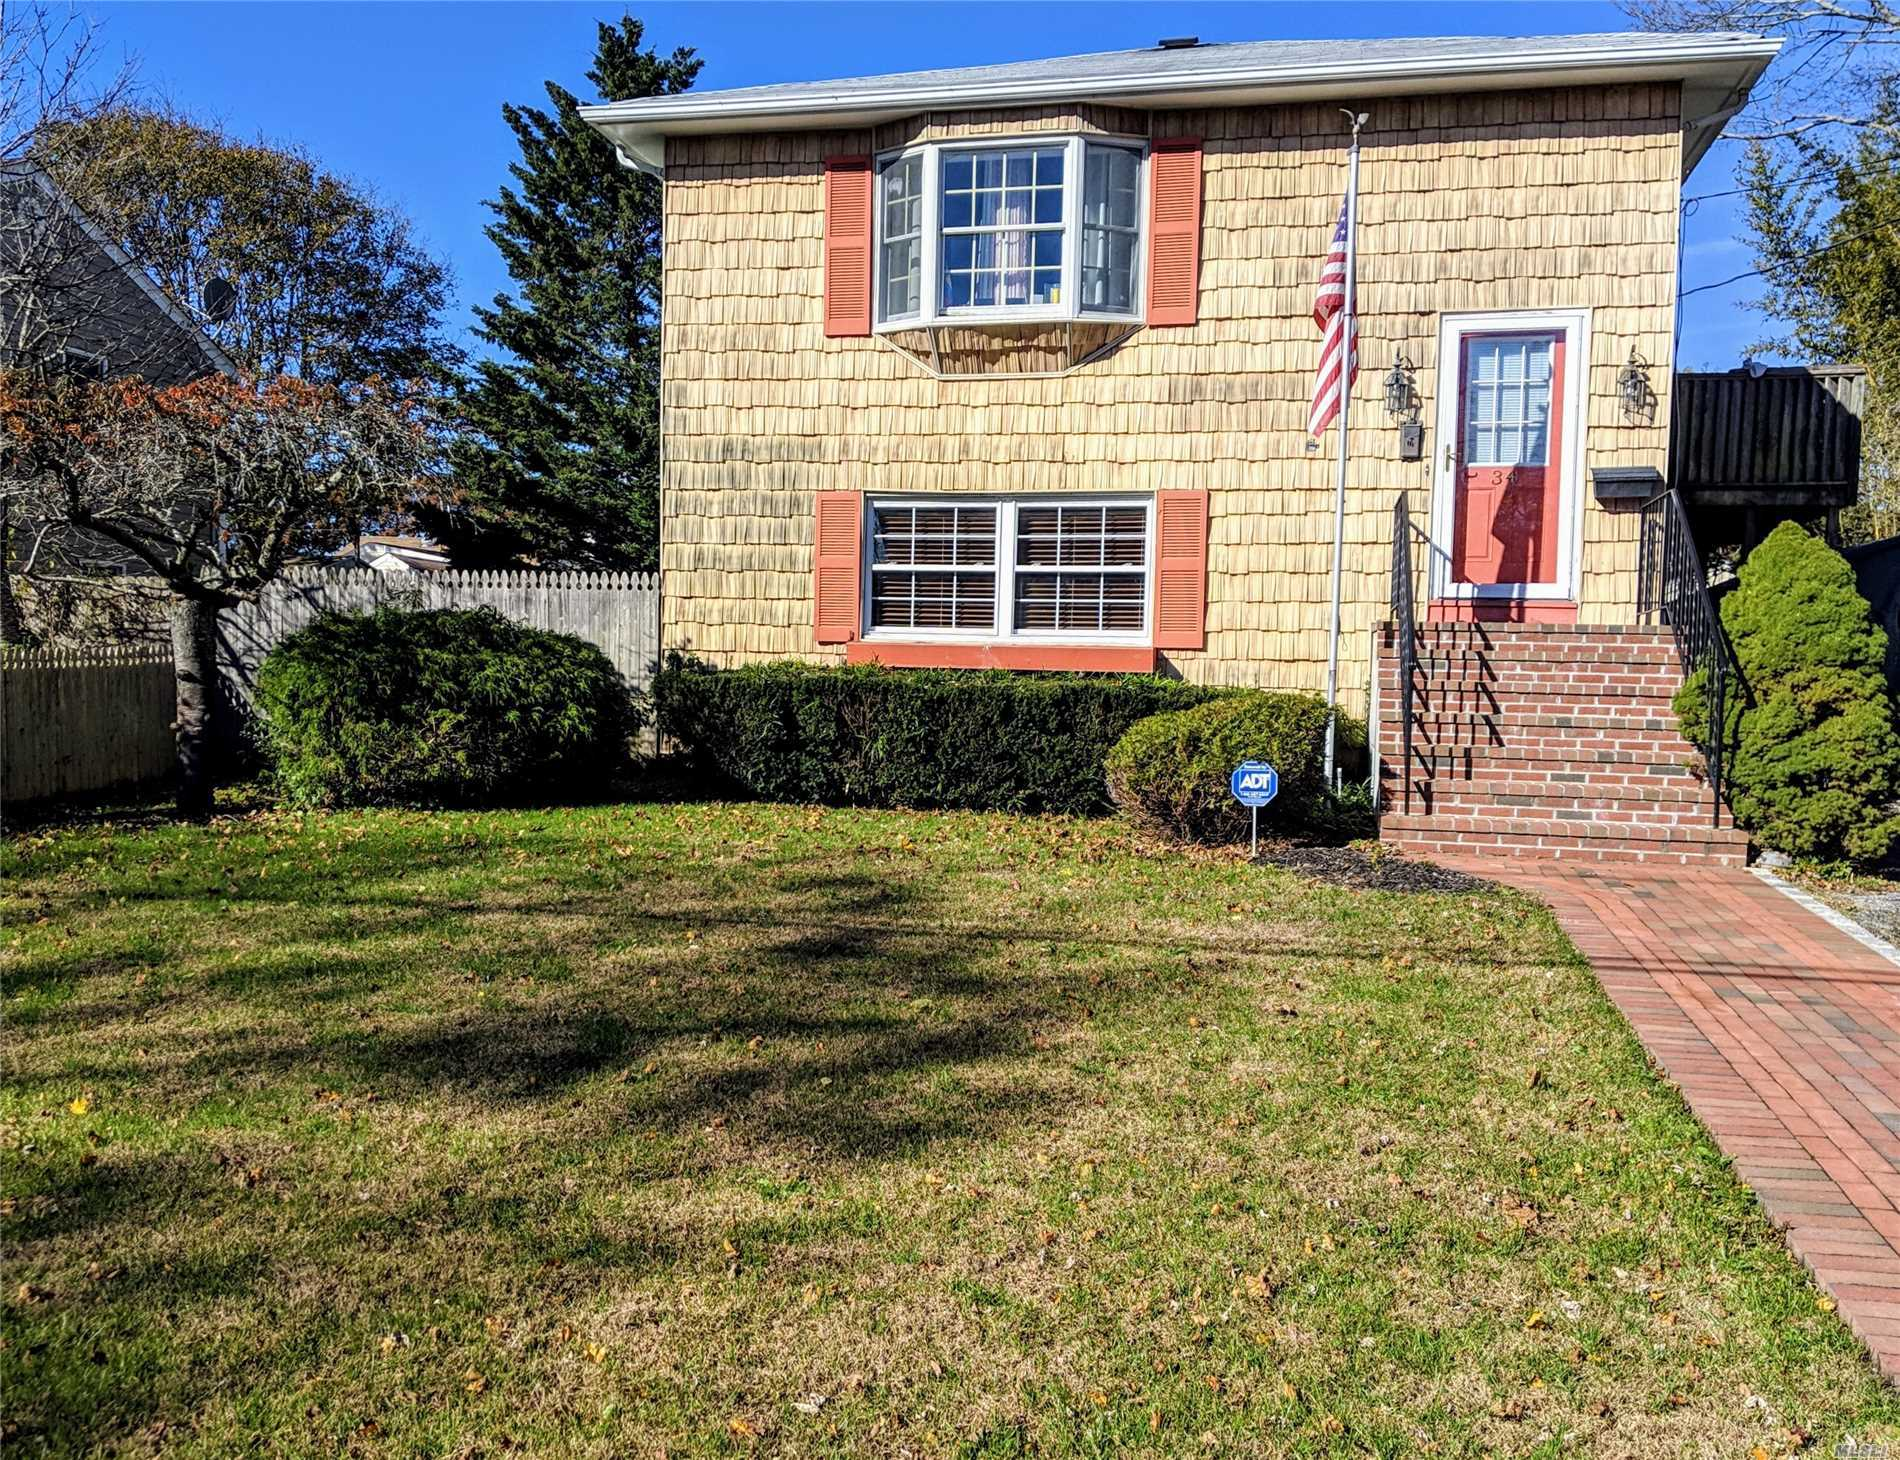 Photo of home for sale at 34 Miramar Ave, East Patchogue NY